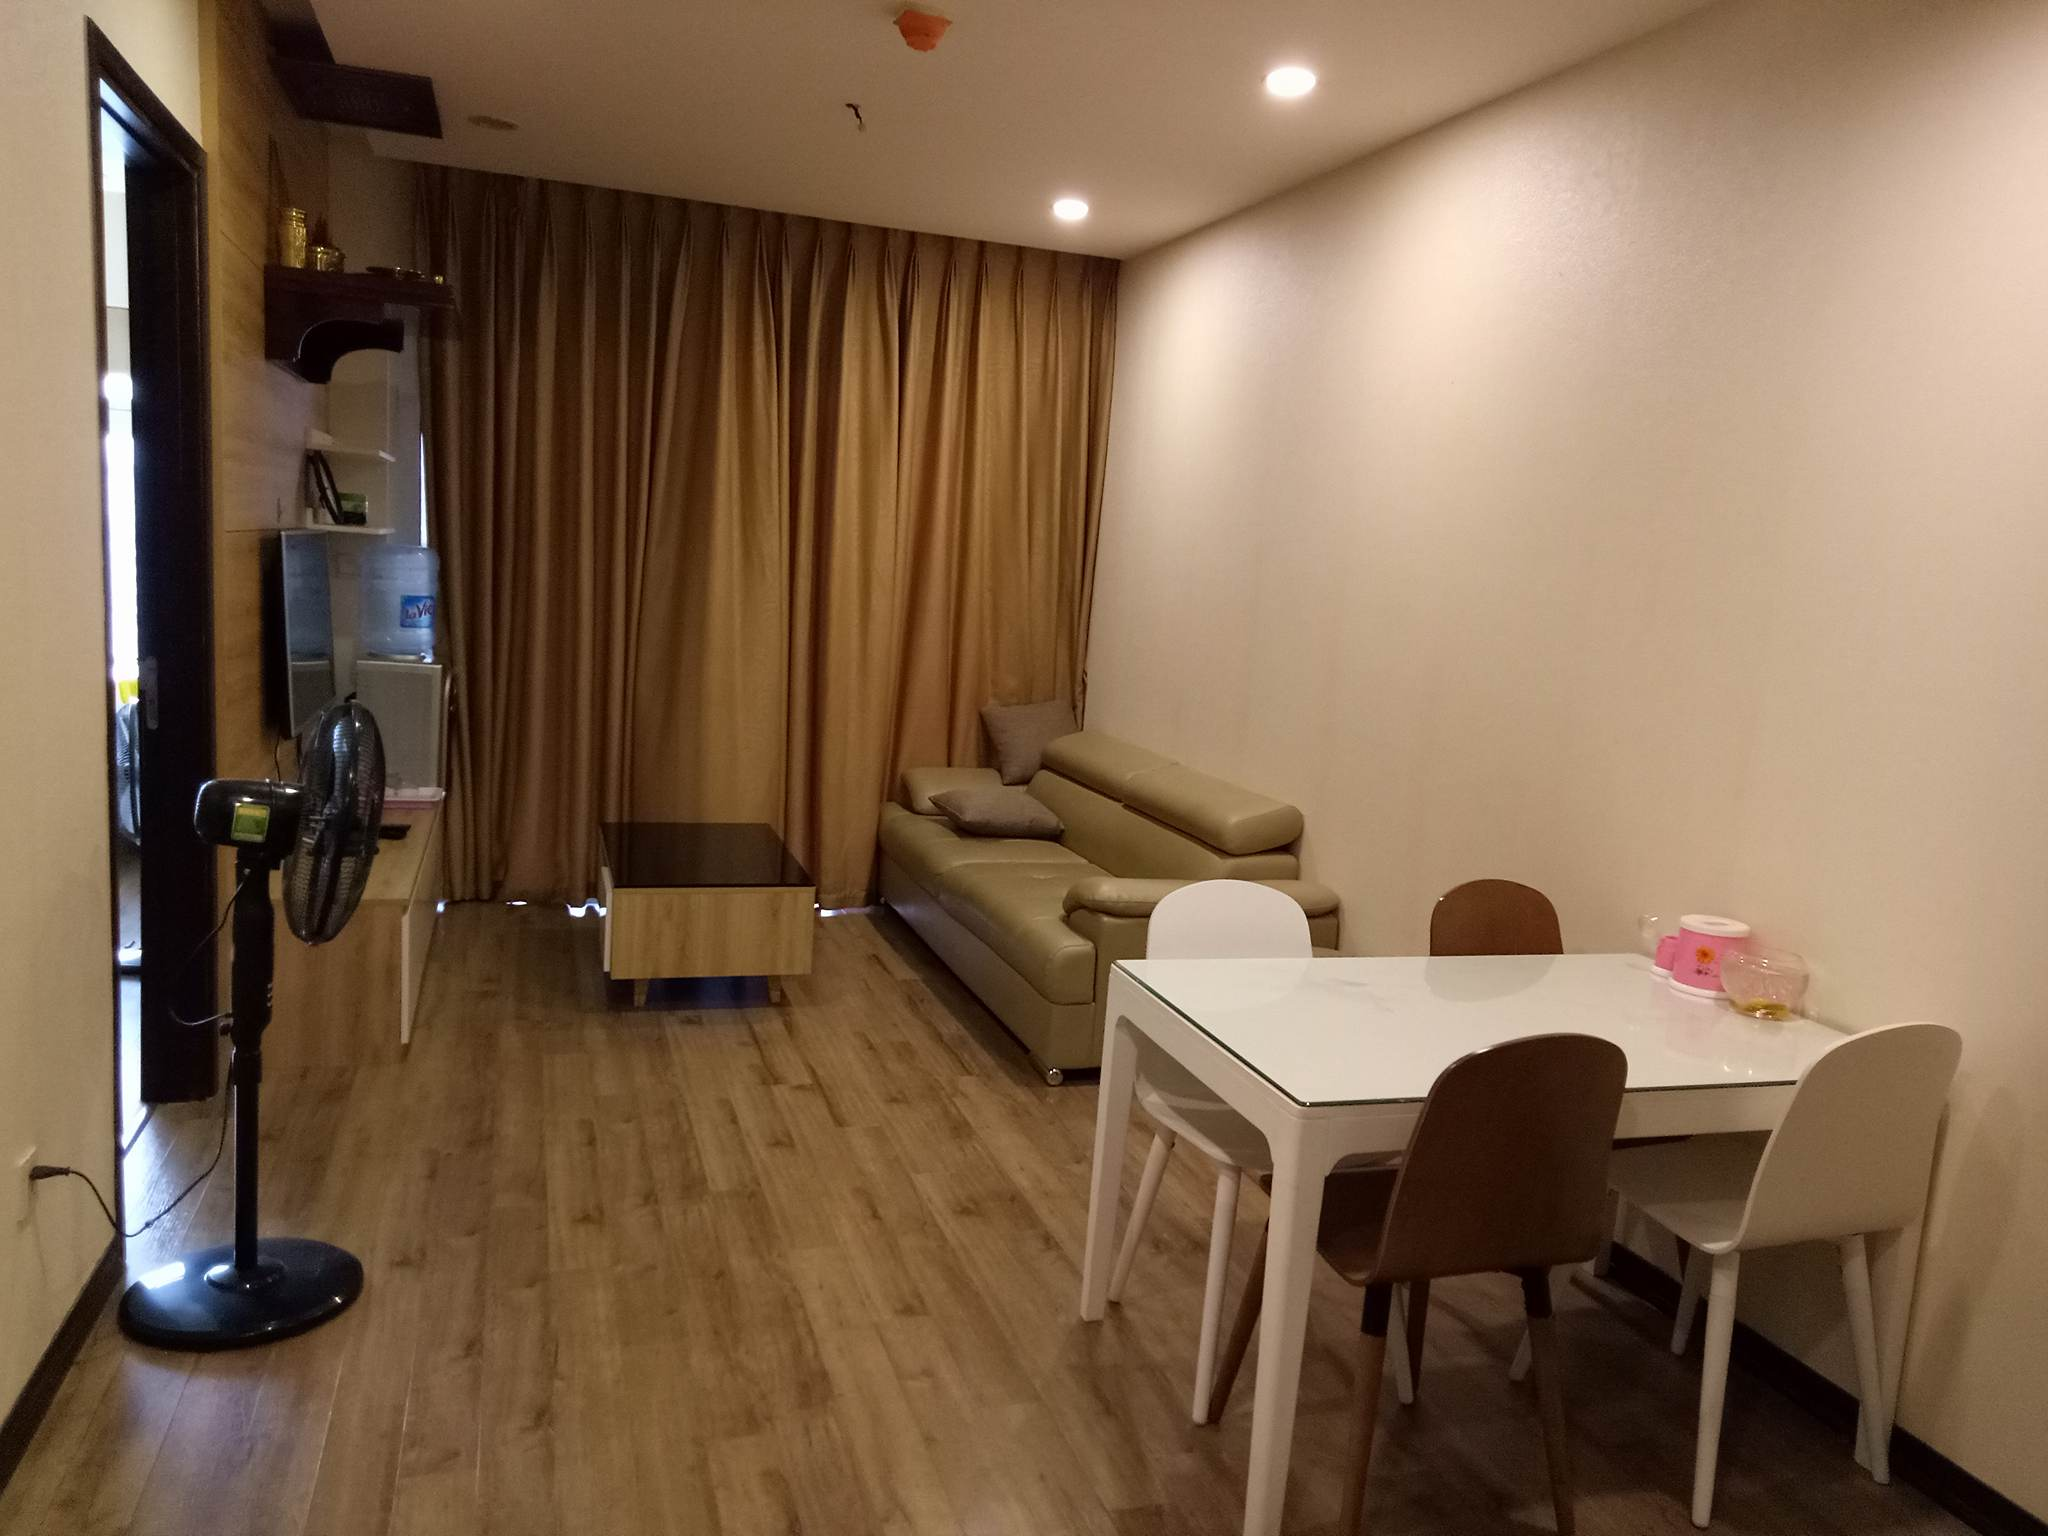 Nice two bedroom apartment for rent in Hoa Binh Green, Hai Ba Trung on 10th floor